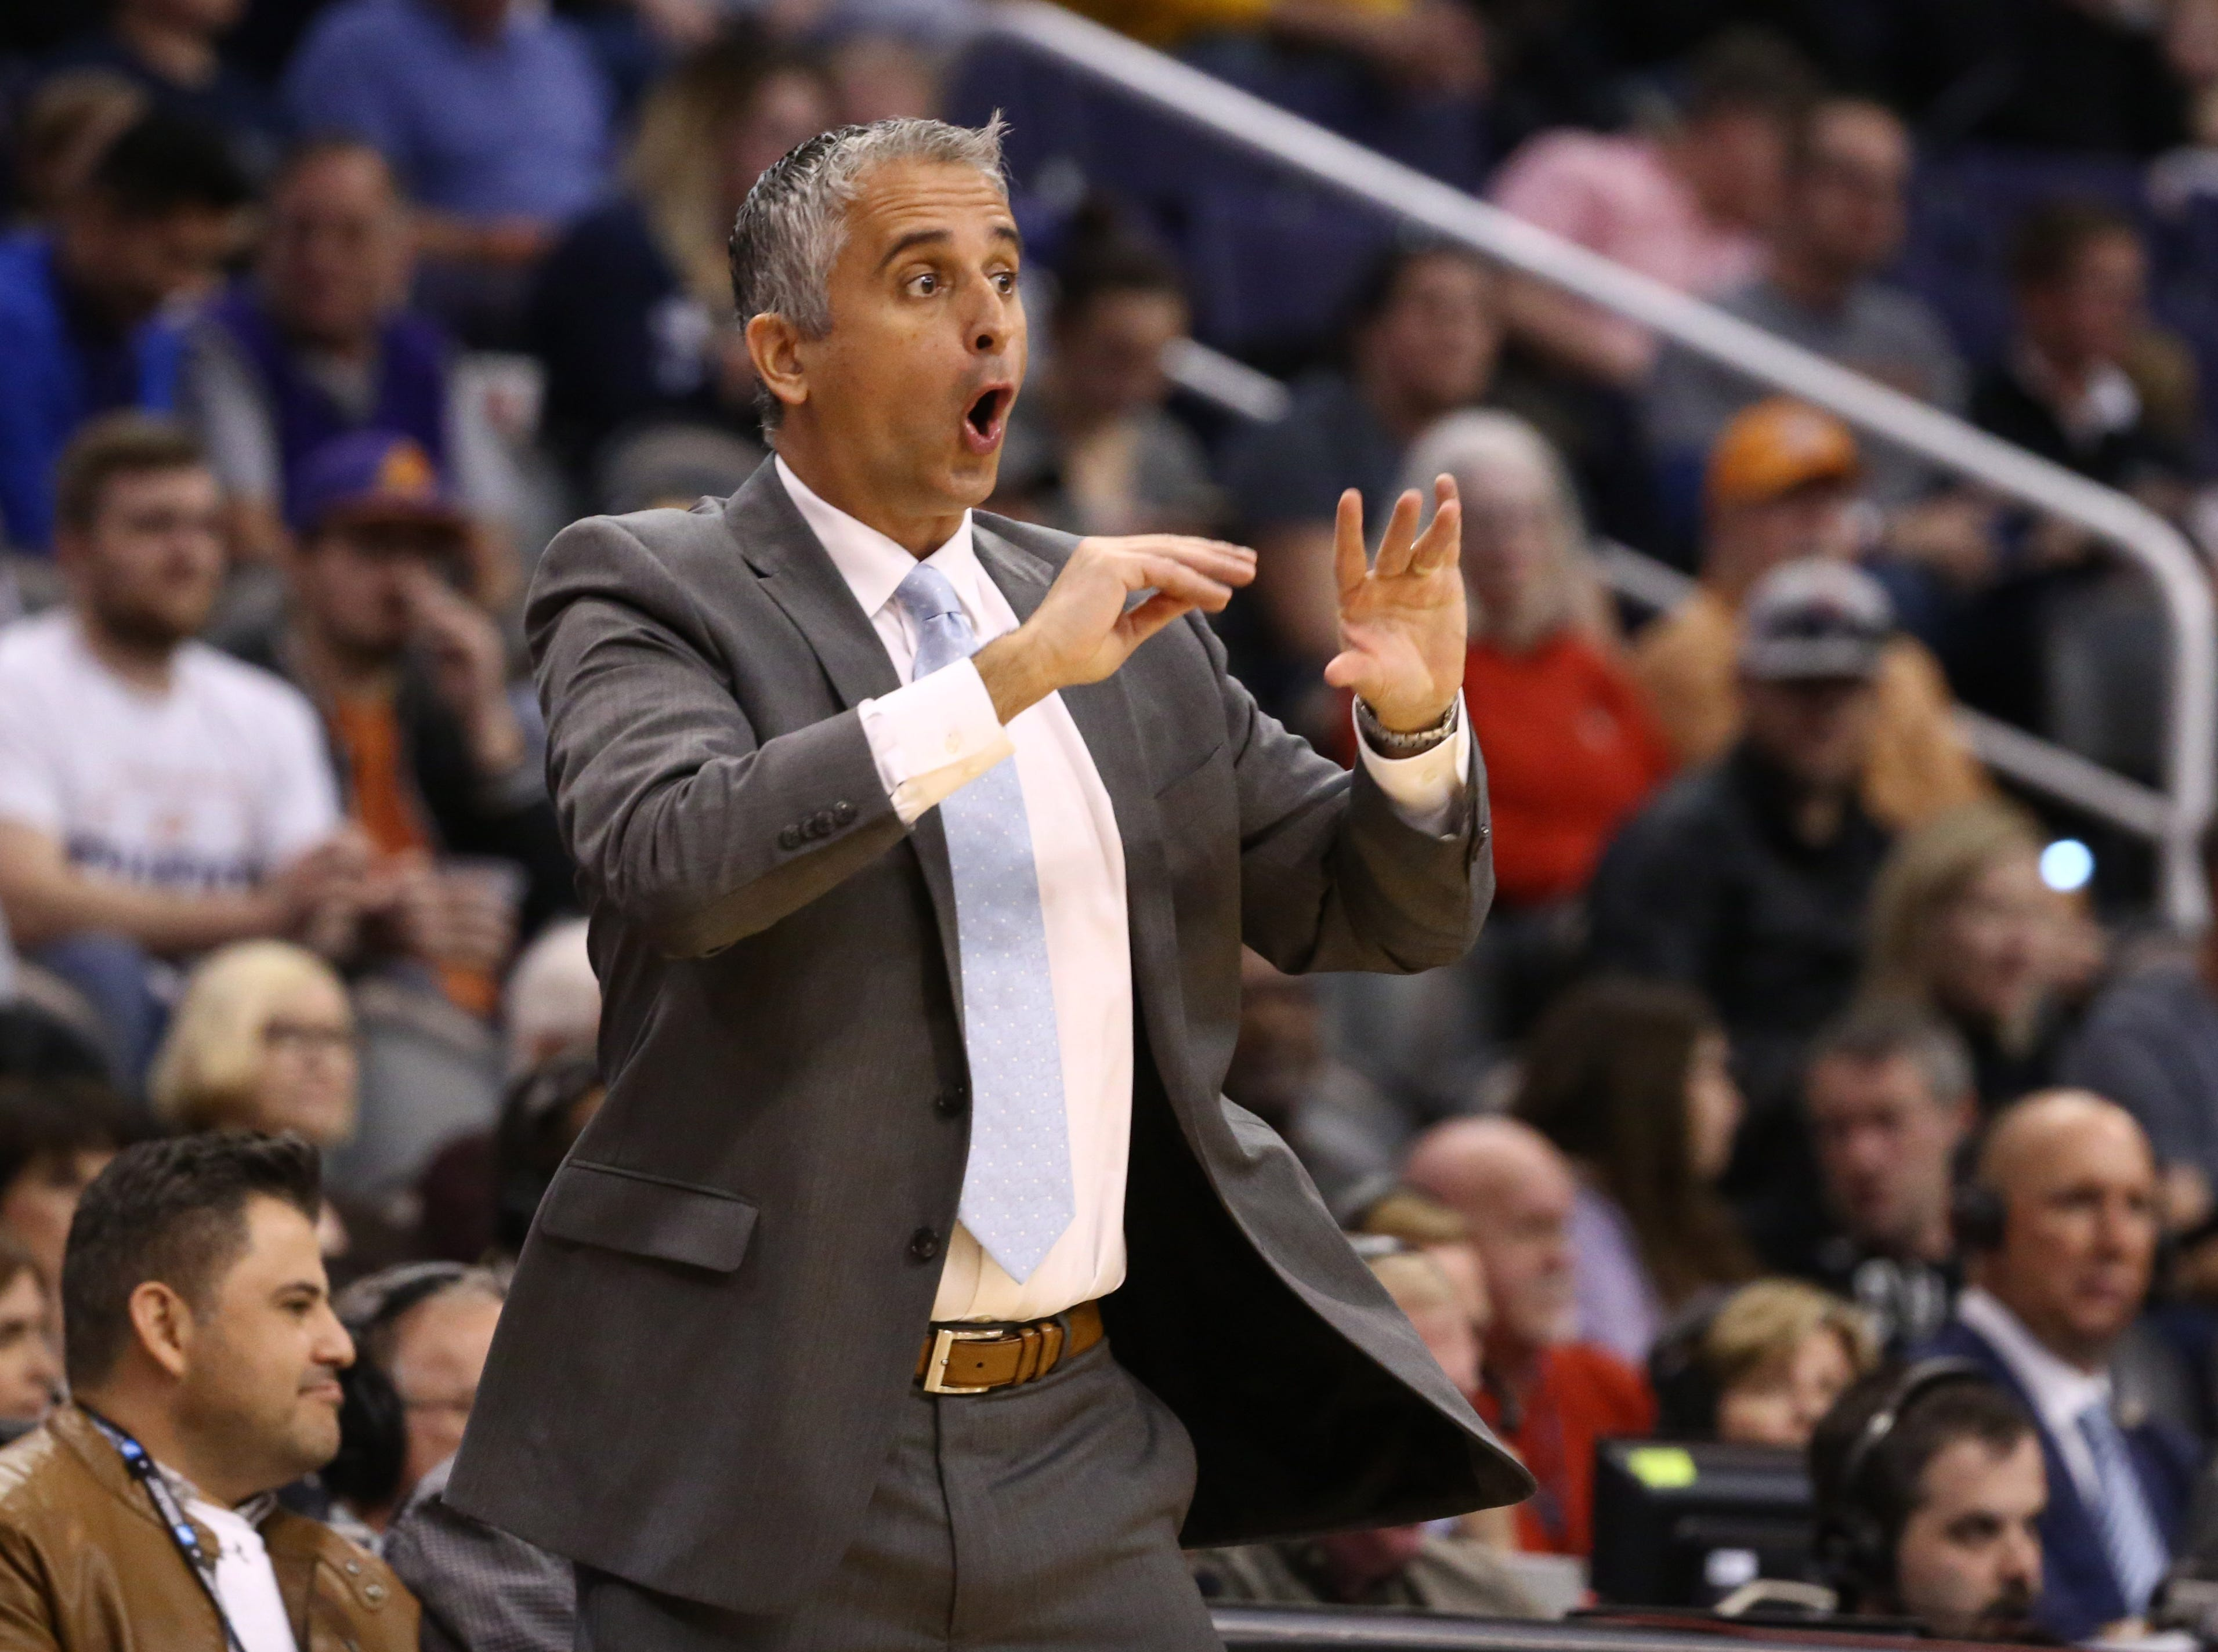 Phoenix Suns head coach Igor Kokoskov reacts to the action against the Minnesota Timberwolves in the first half on Jan. 22 at Talking Stick Resort Arena.